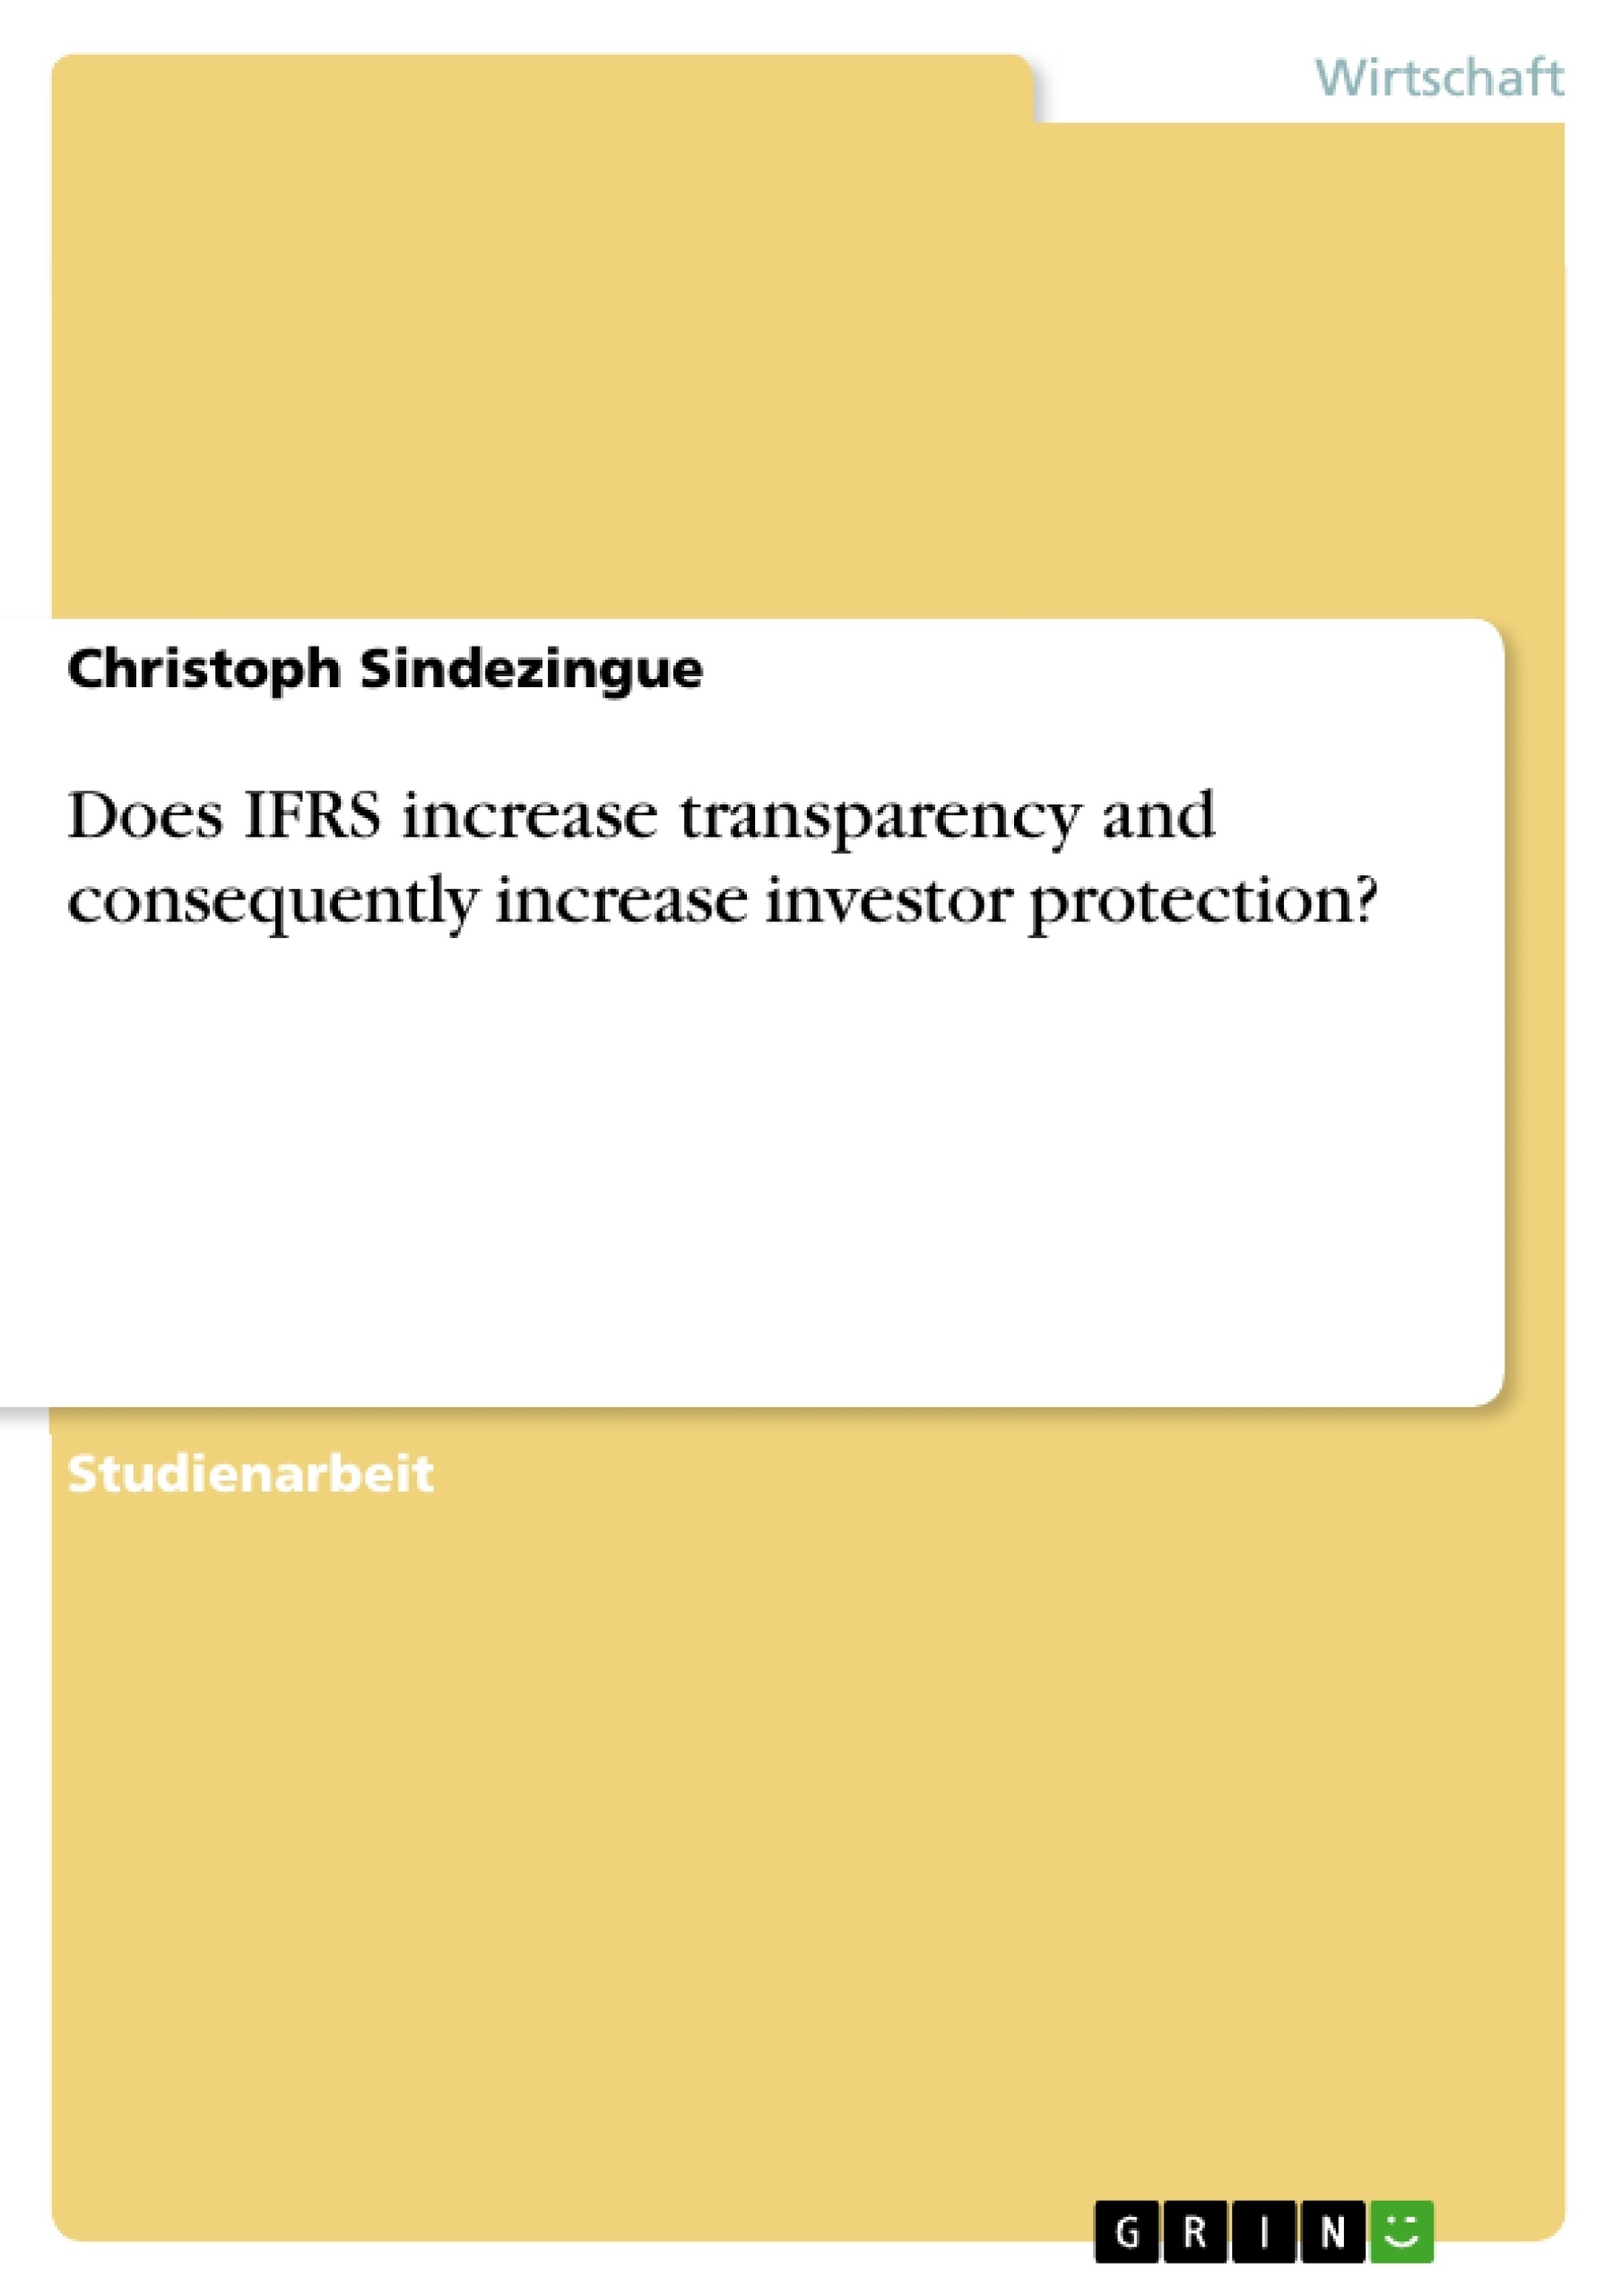 Titel: Does IFRS increase transparency and  consequently increase investor protection?